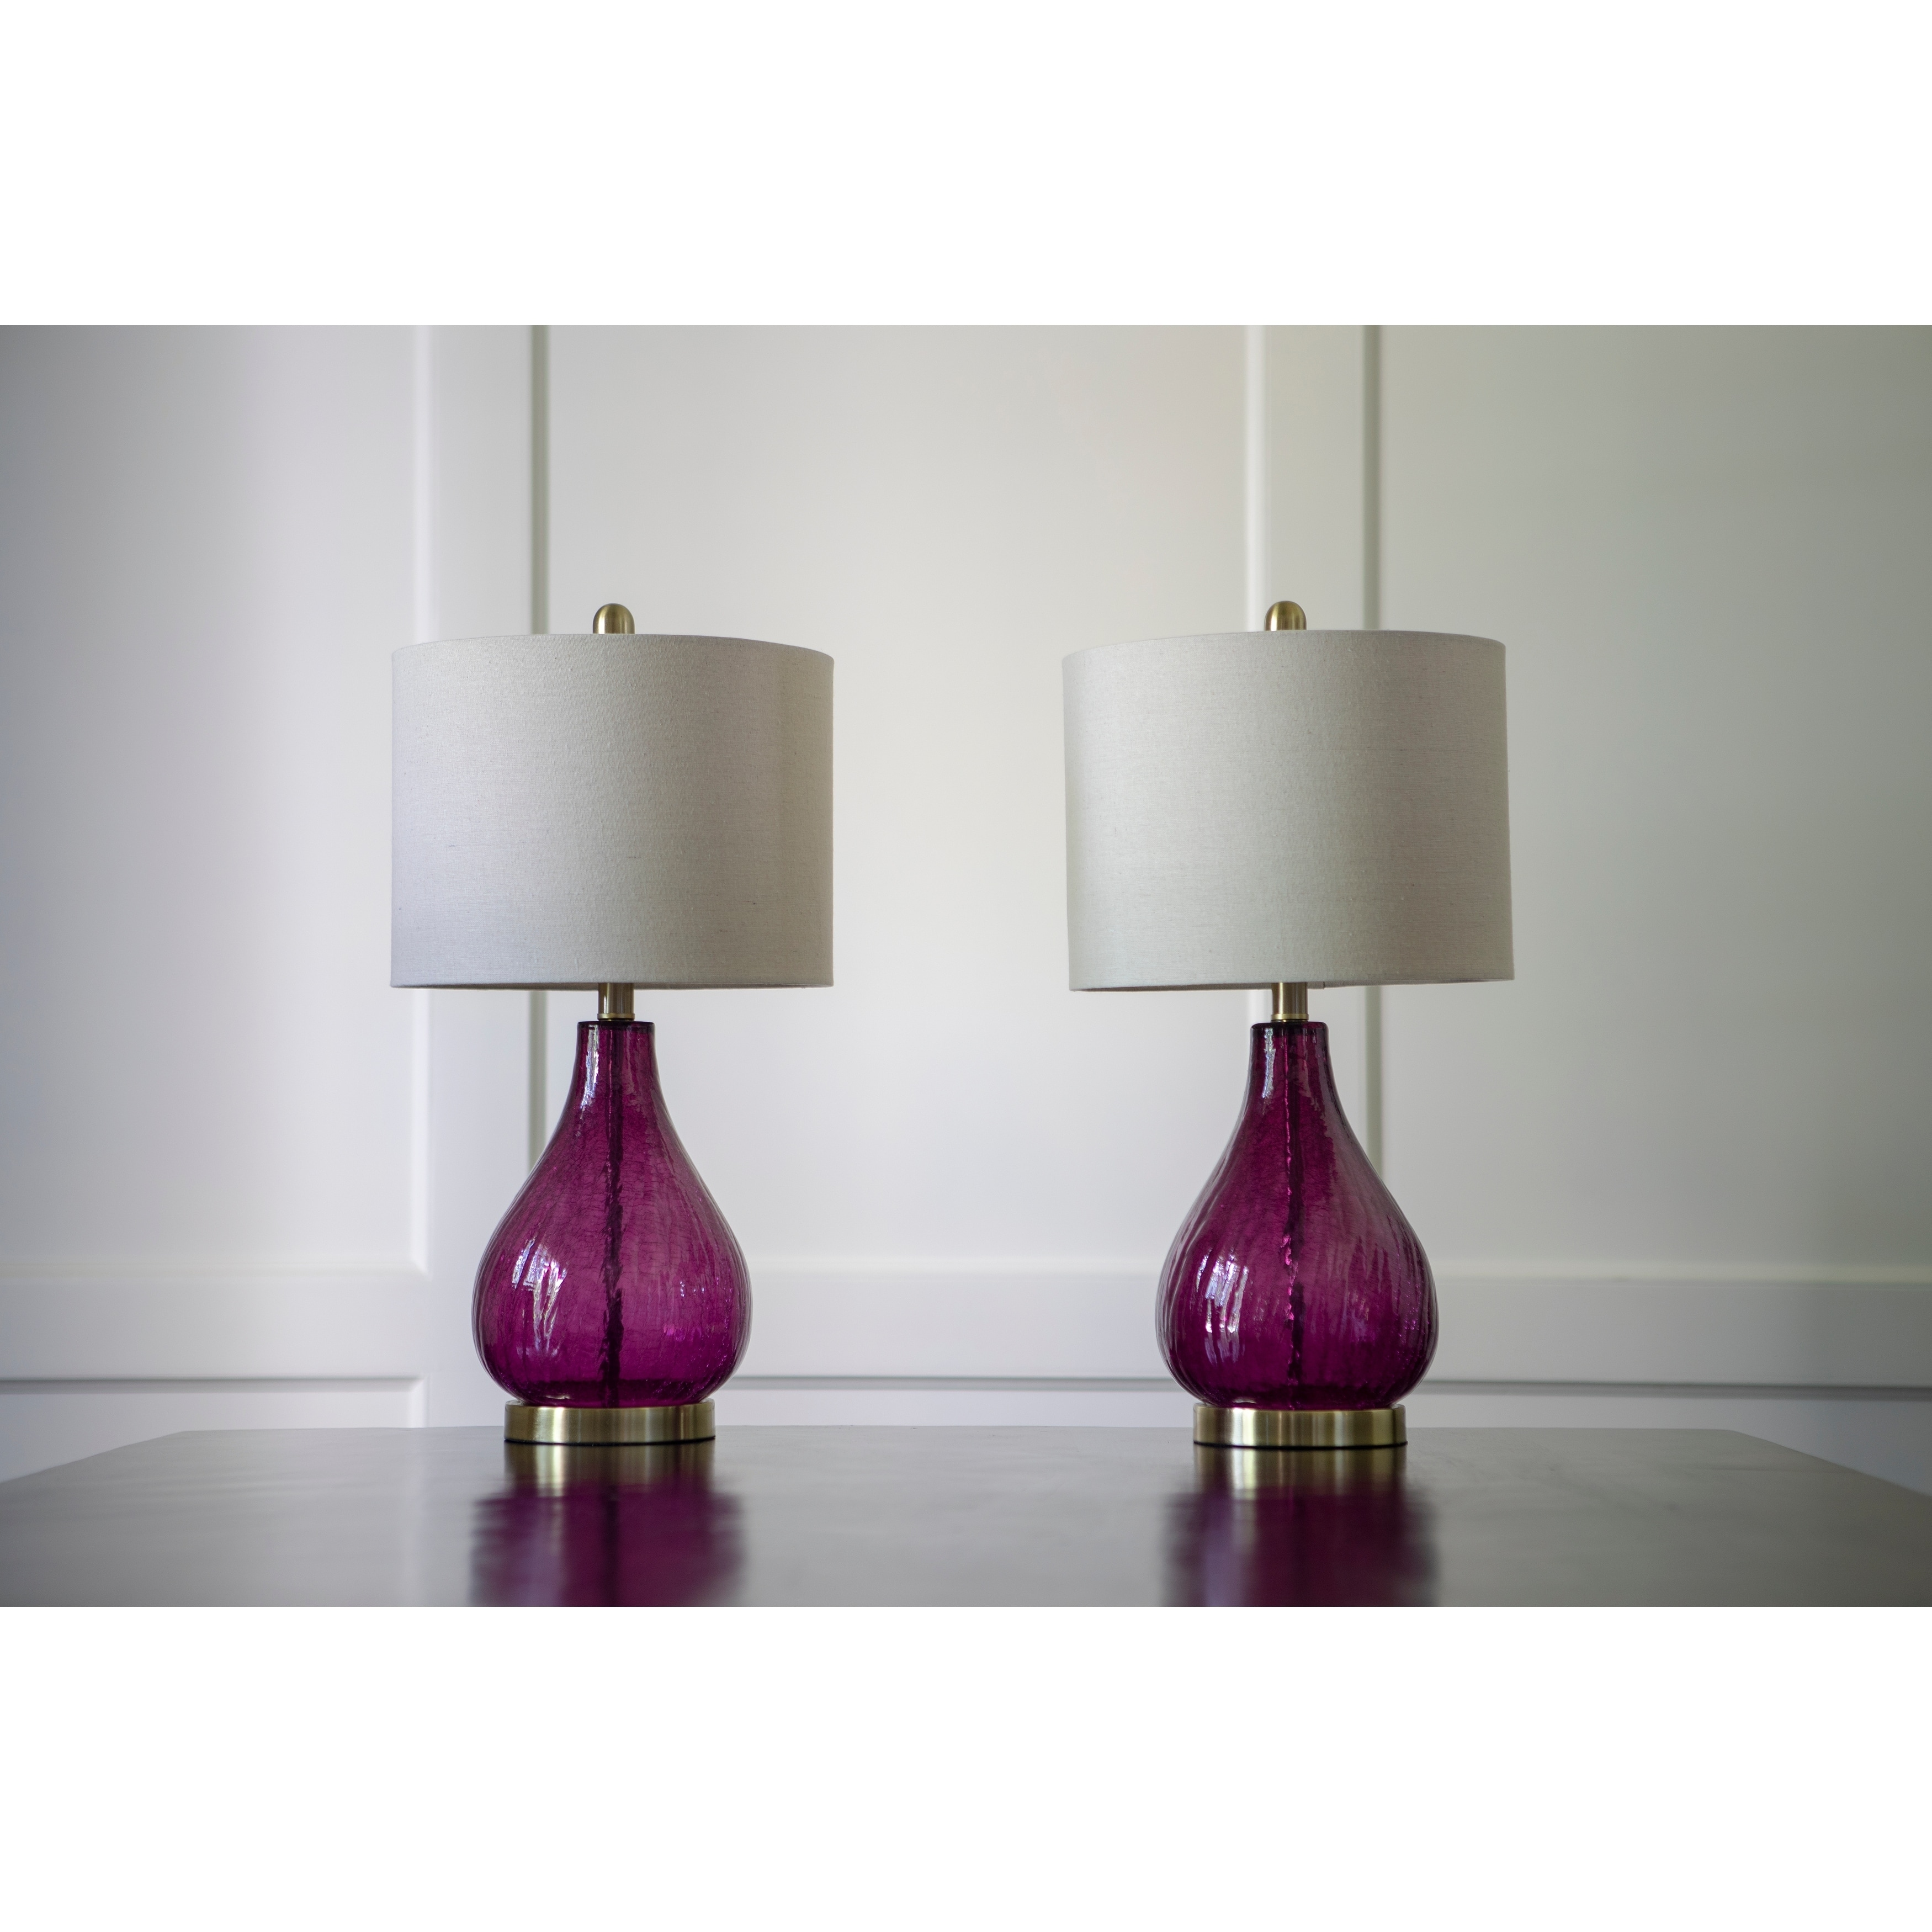 Glass Crackle Lamp Set Of 2 Plum Crackle Glass Table Lamps